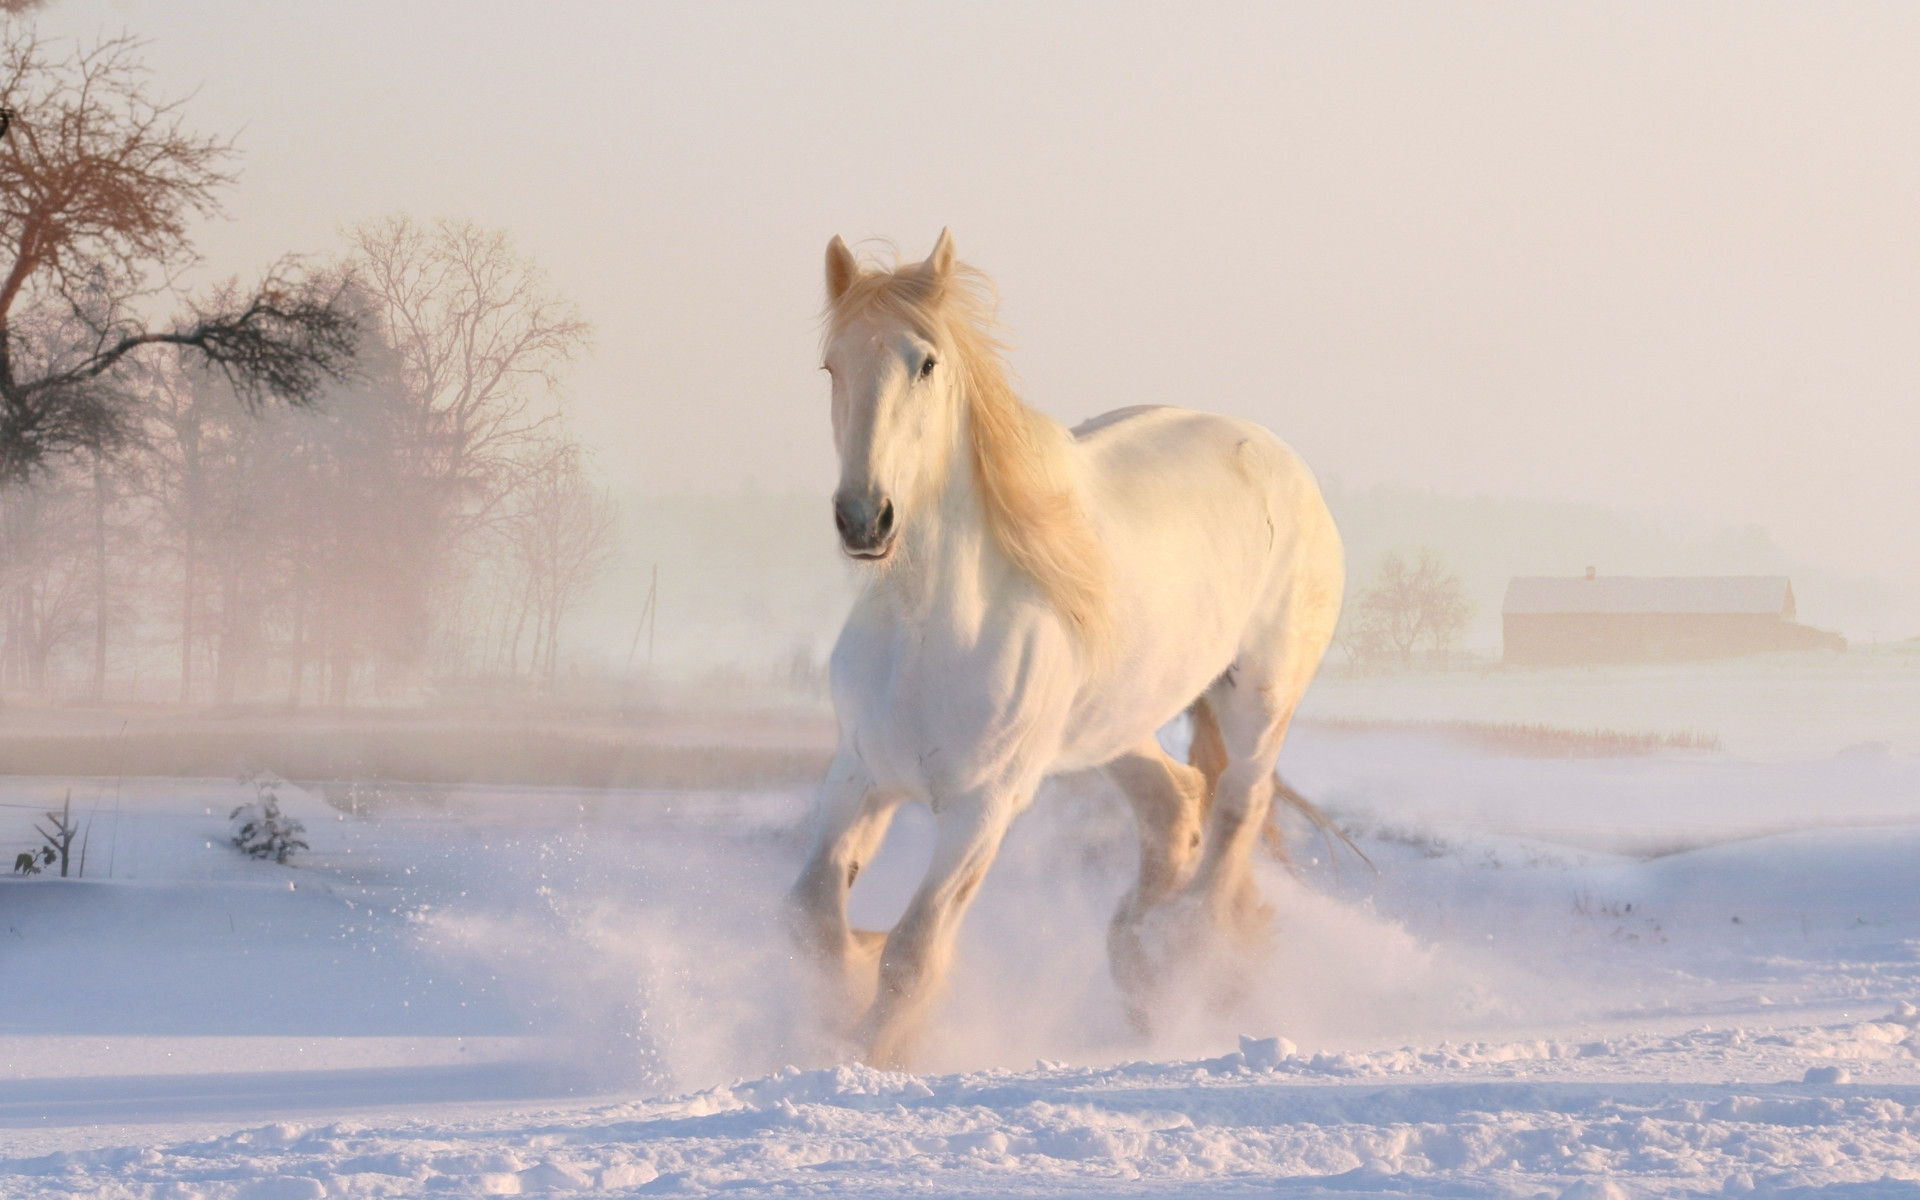 White horse running through snow wallpaper 1920x1200